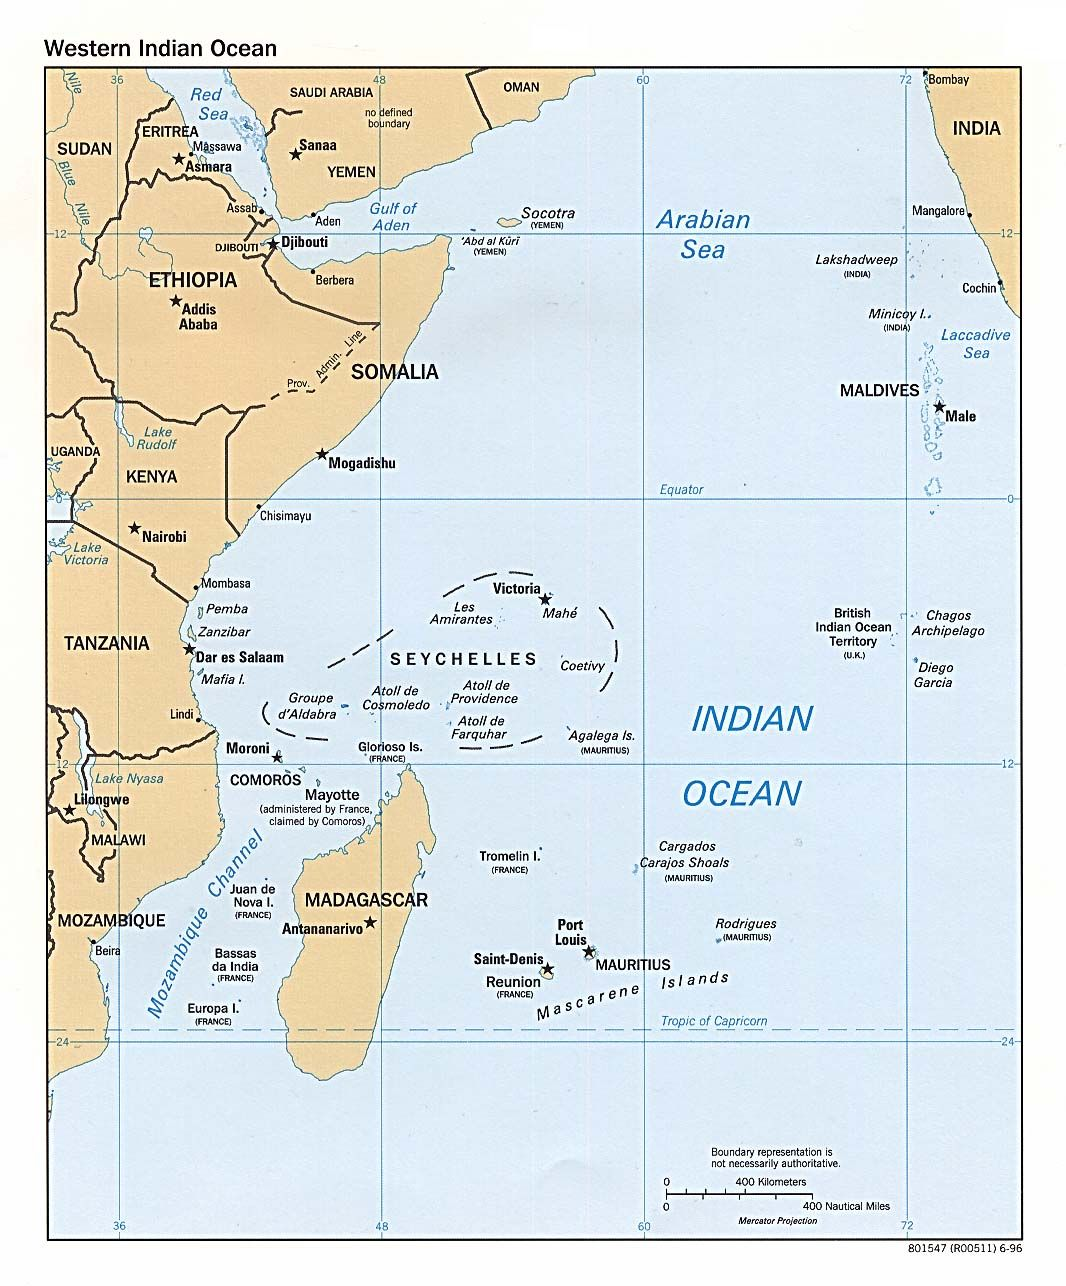 Seychelles Map Seychelles Ocean And Mauritius - Indian ocean seychelles map